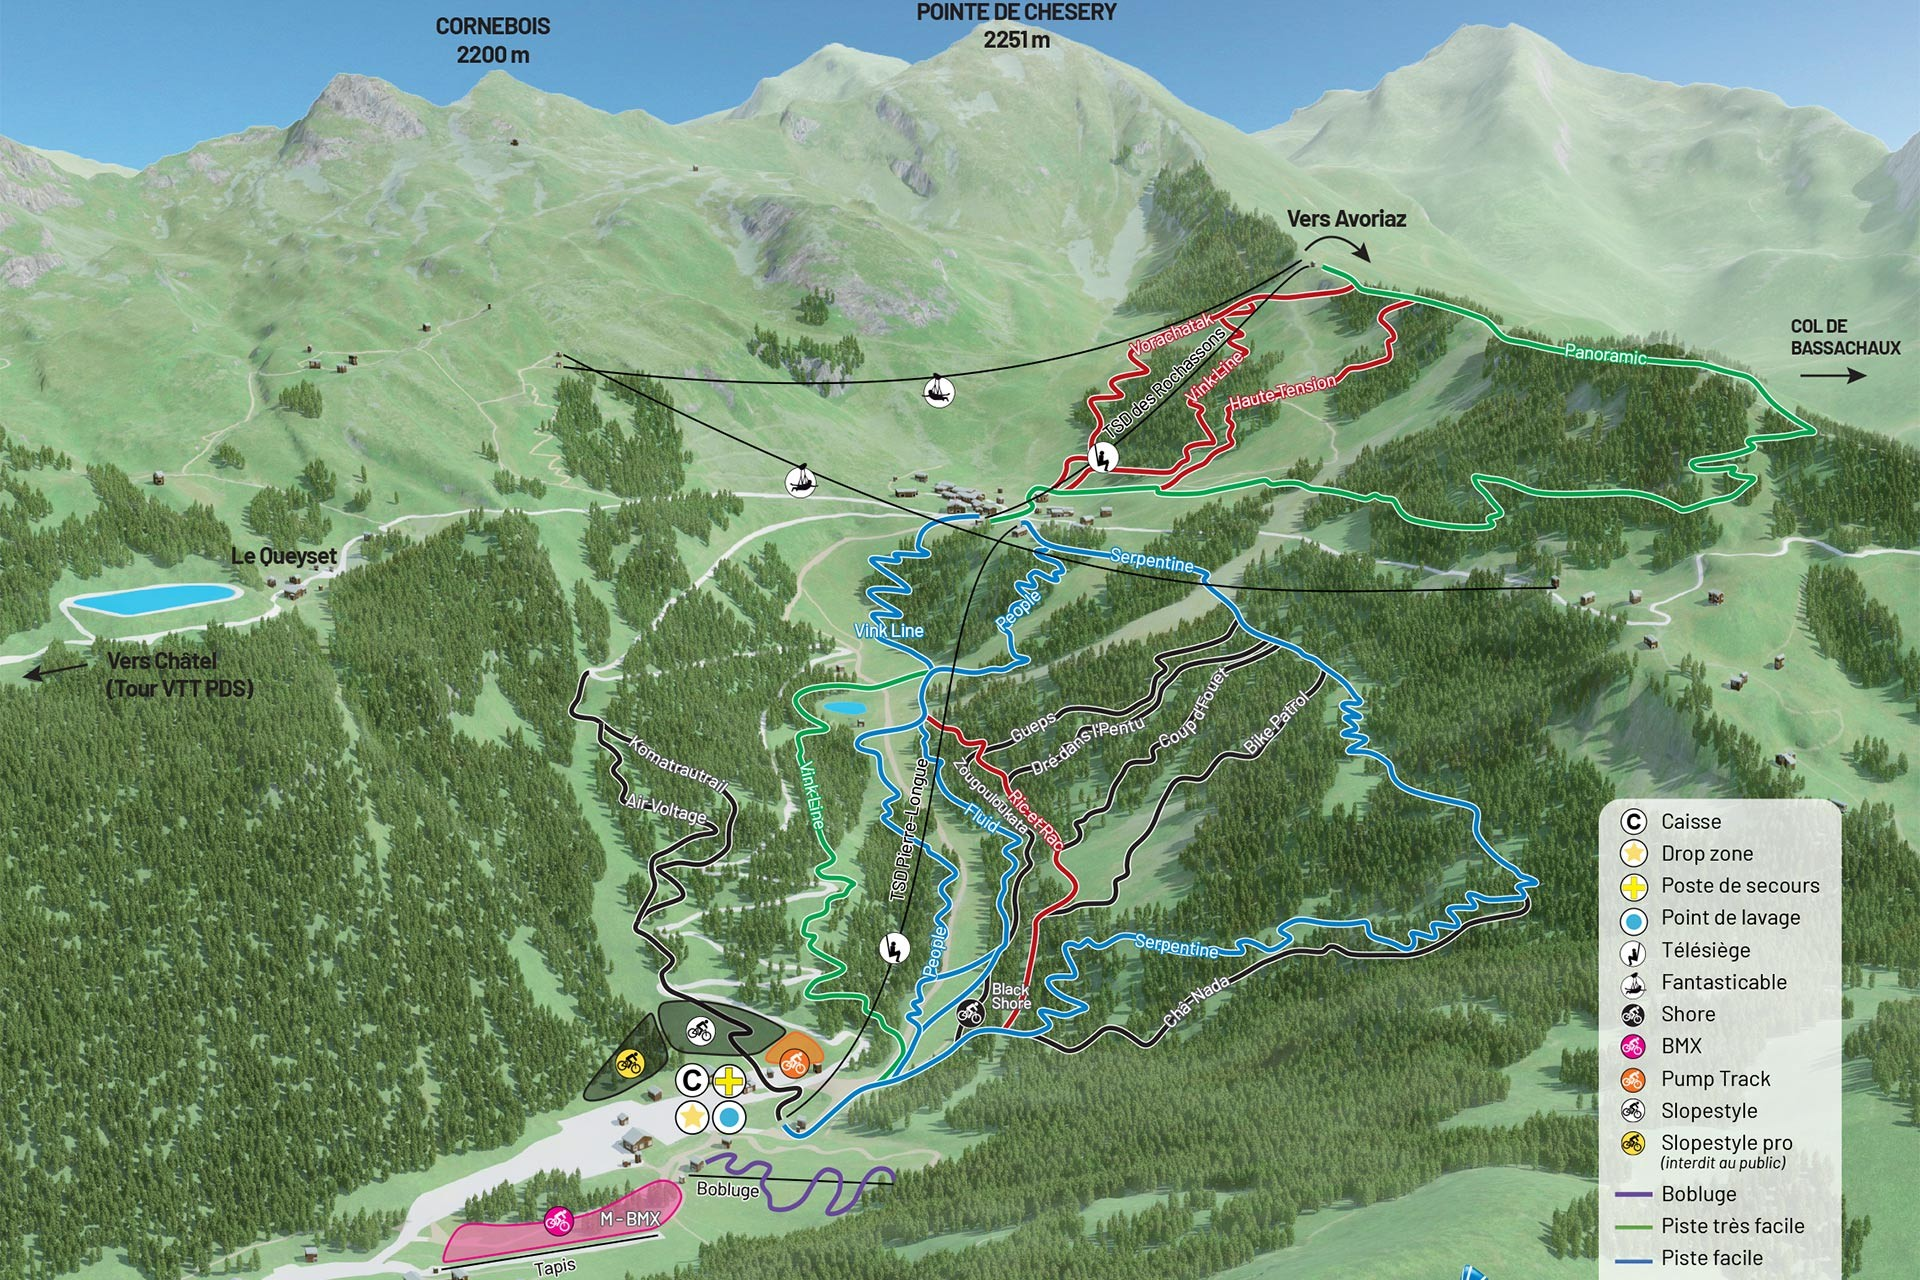 Map of the MTB trails